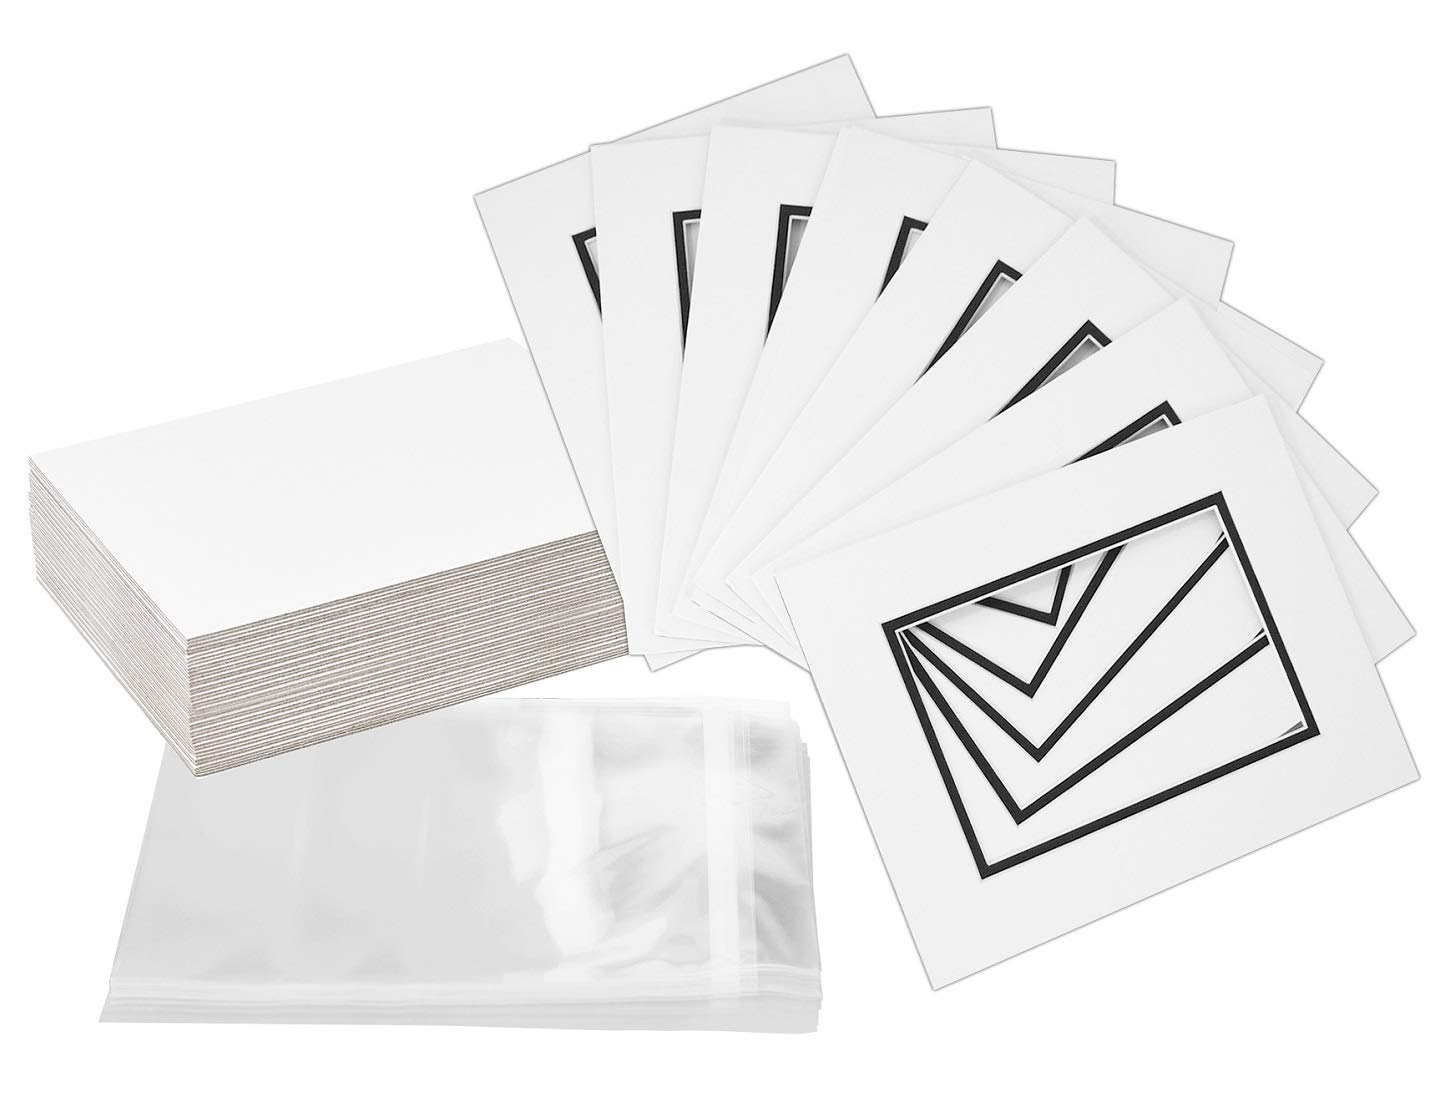 Pack of 32 8x10 WHITE/BLACK Double Mats Mattes for 5x7 photo with White Core Bevel Cut + Backing + Bags by Golden State Art